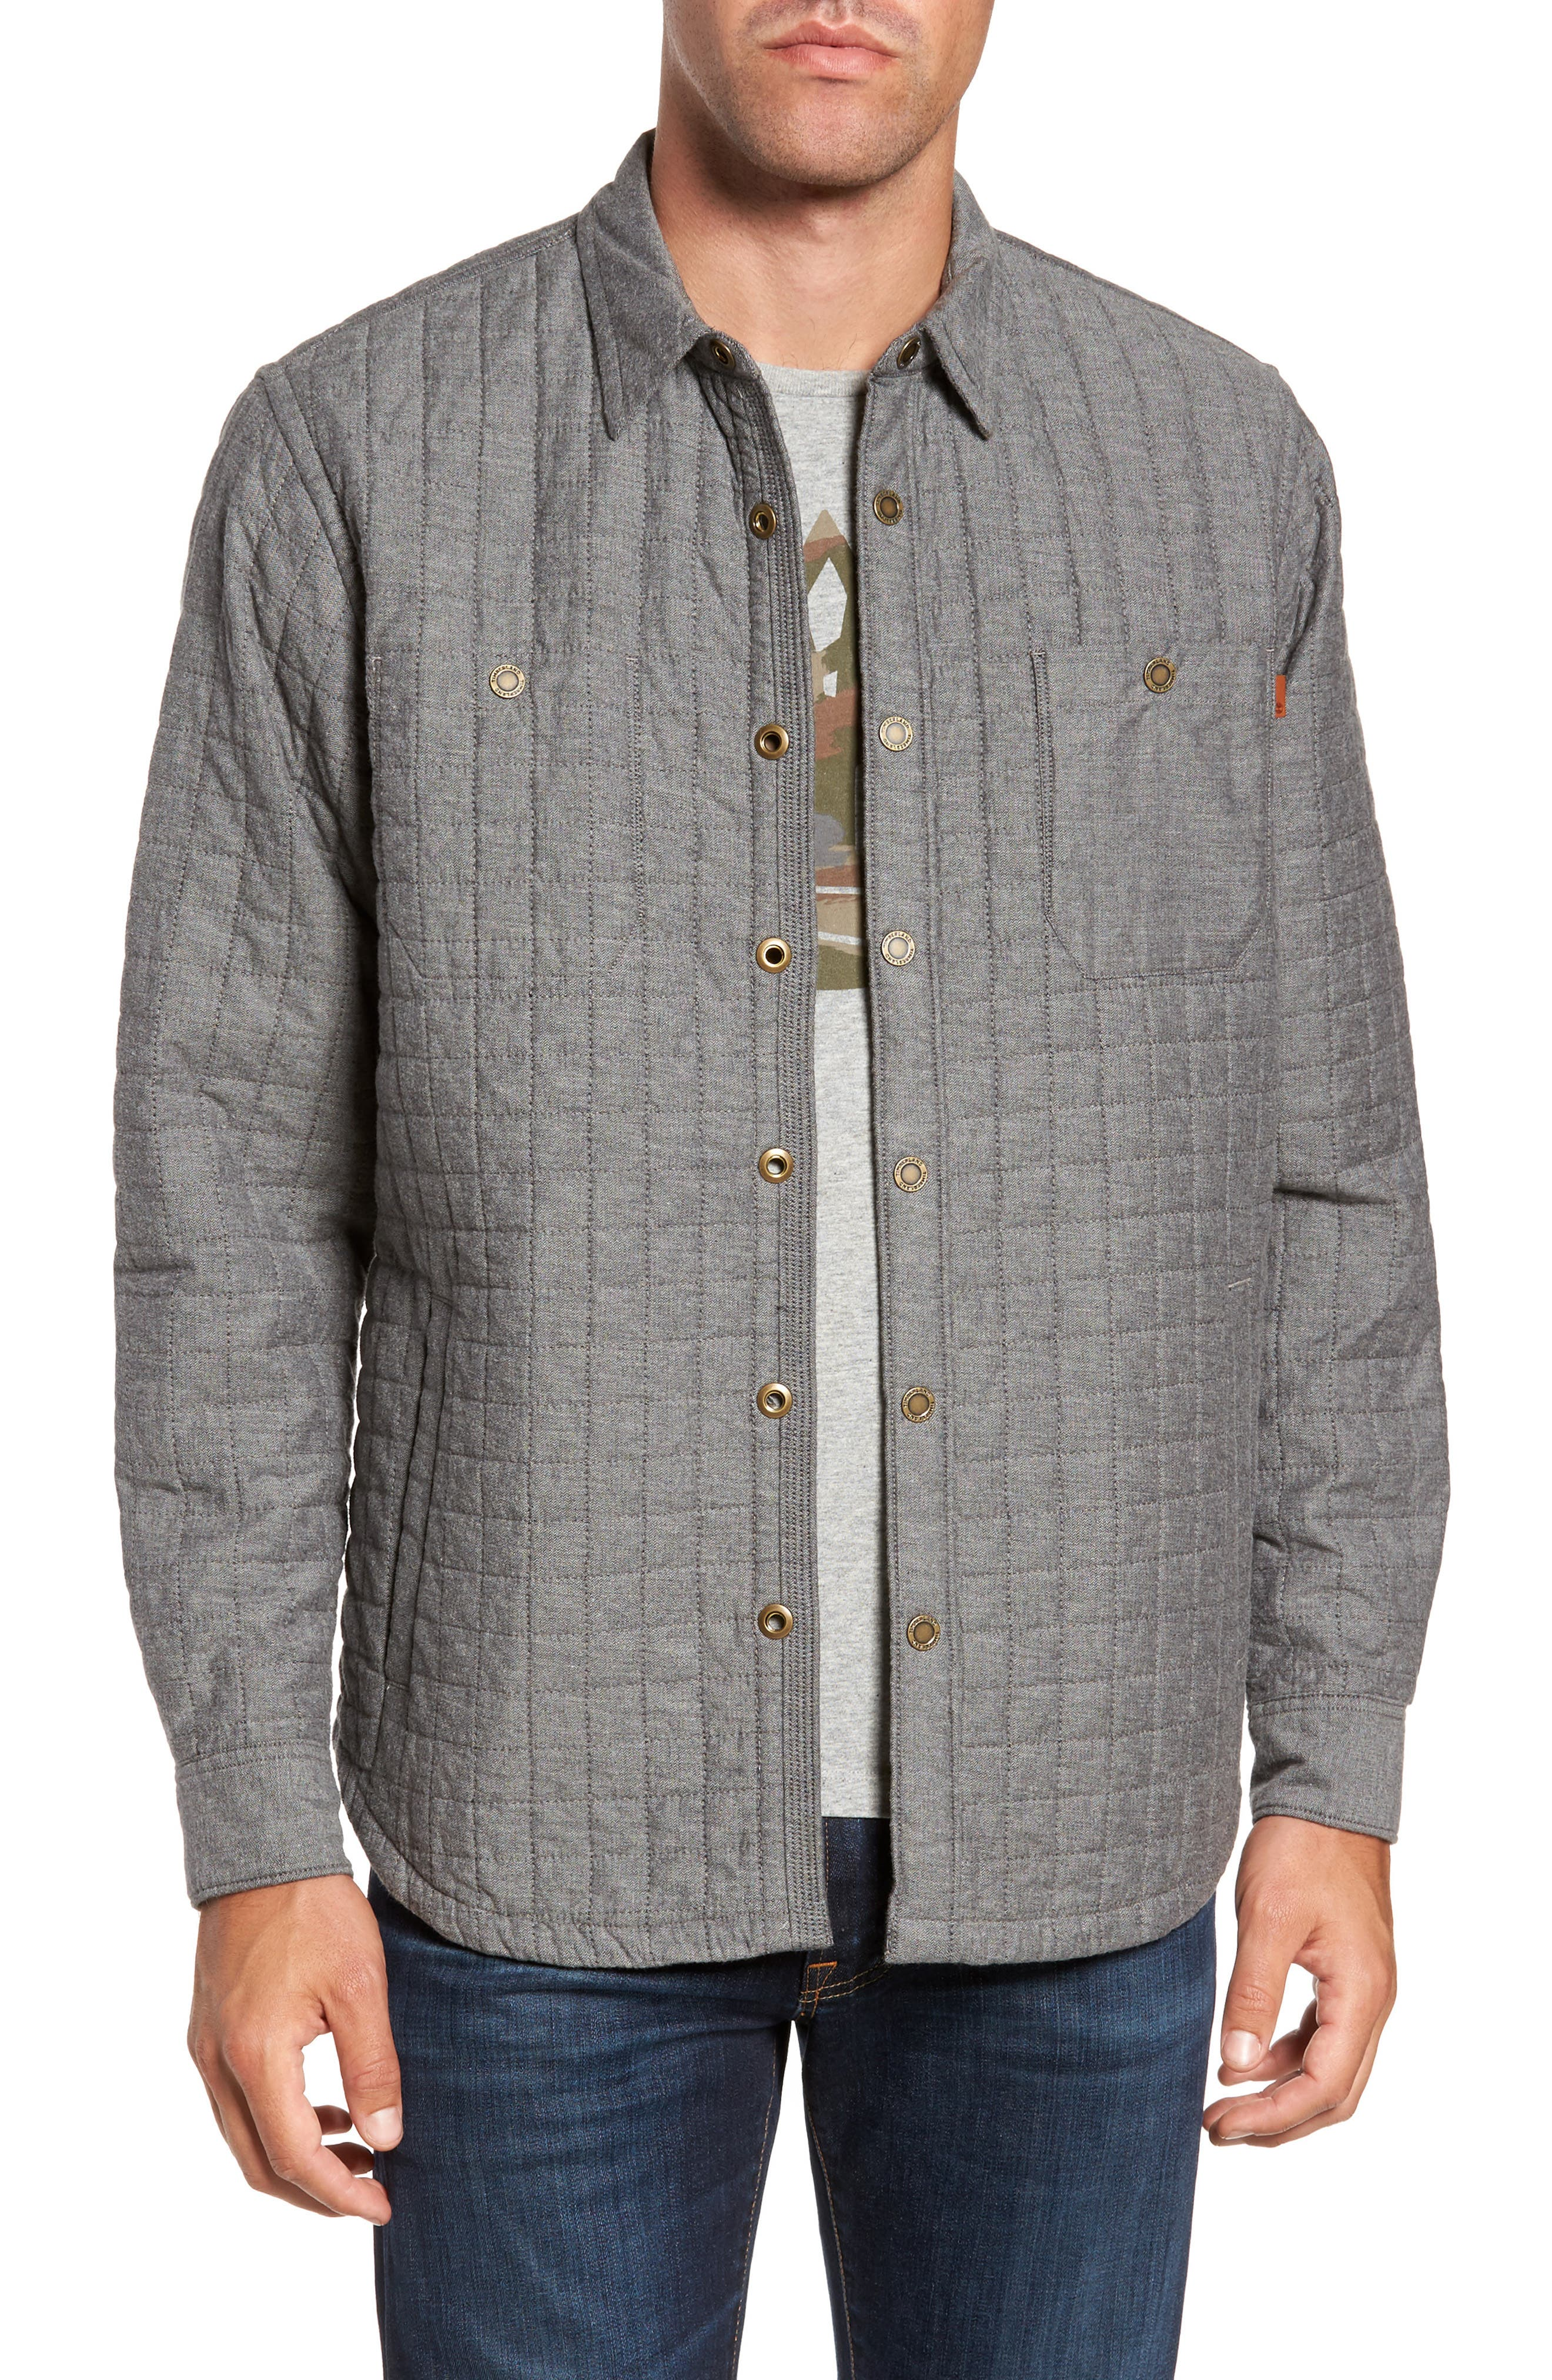 Timberland Gunstock River Lightweight Quilted Shirt Jacket